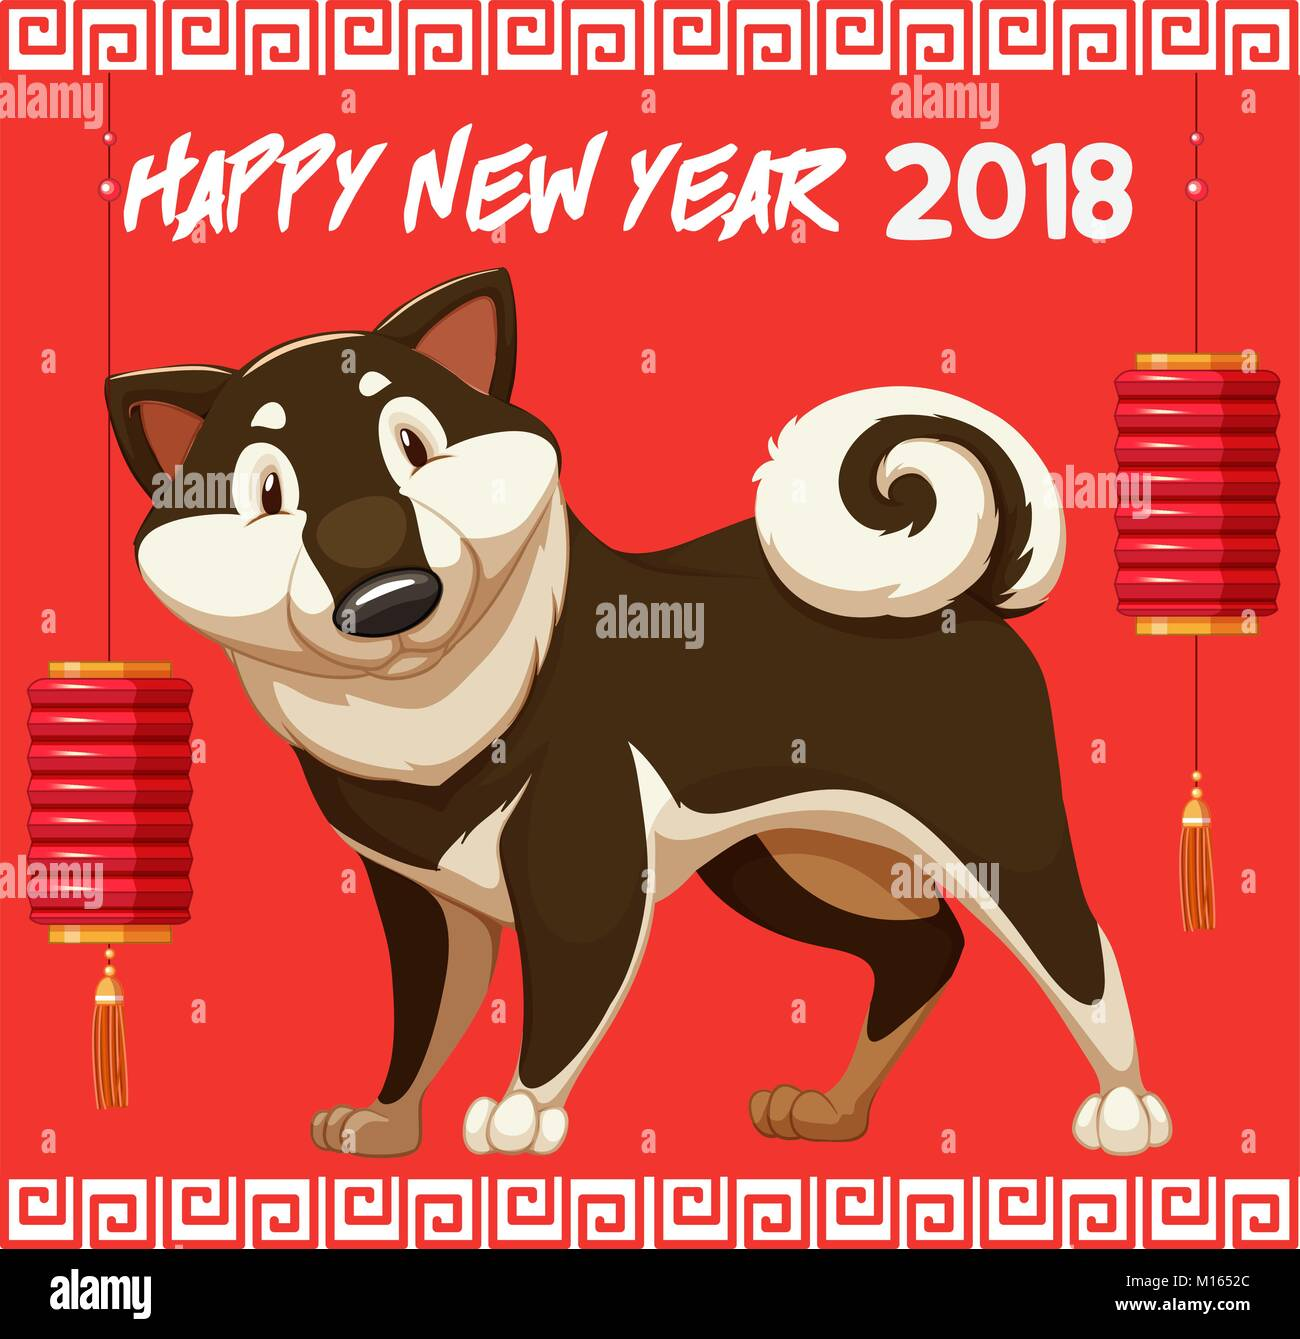 Happy New Year For 2018 With Cute Dog Illustration Stock Vector Art